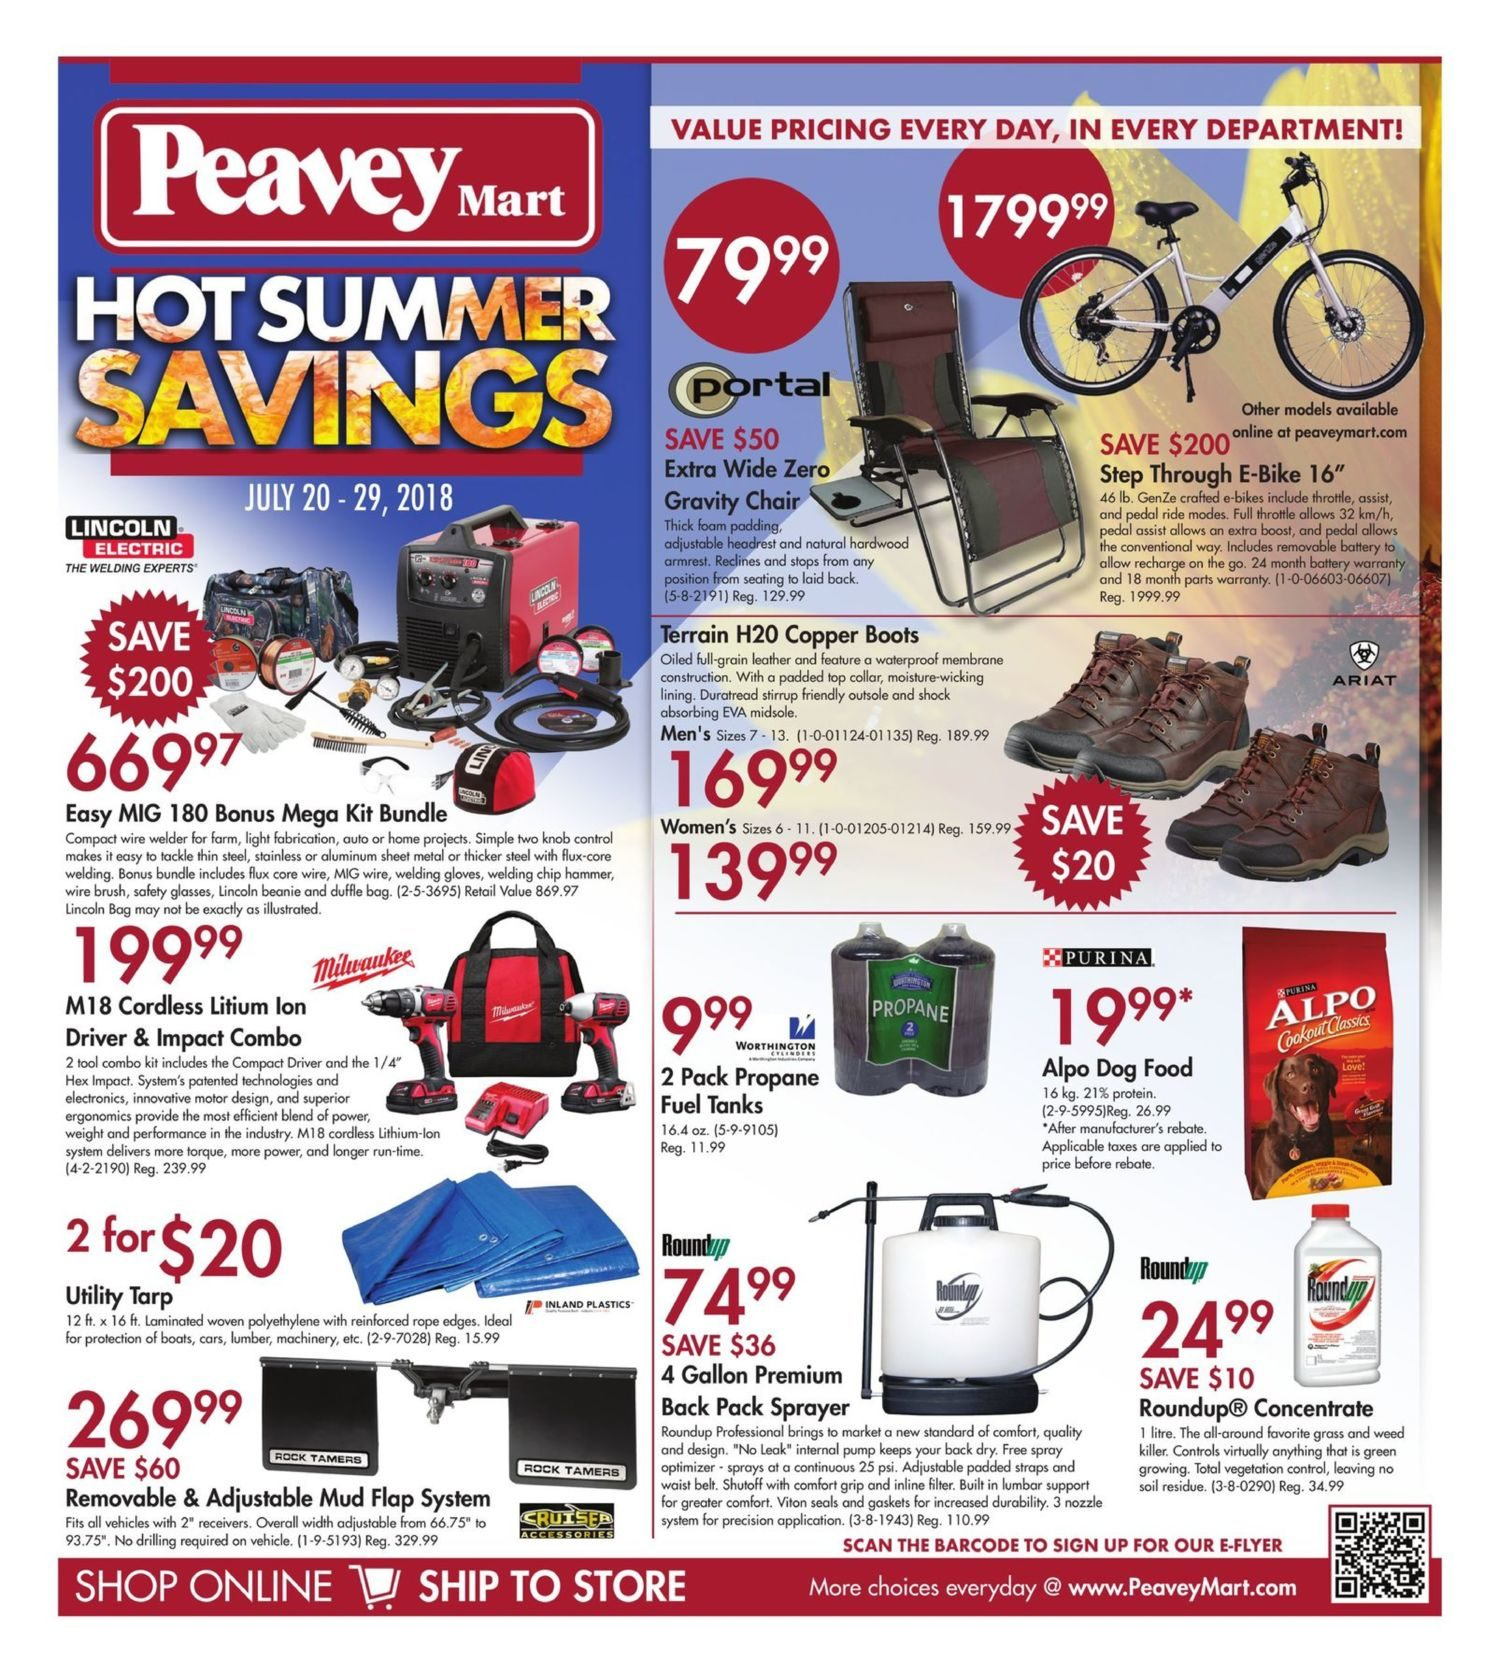 PeaveyMart Weekly Flyer - Hot Summer Savings - Jul 20 – 29